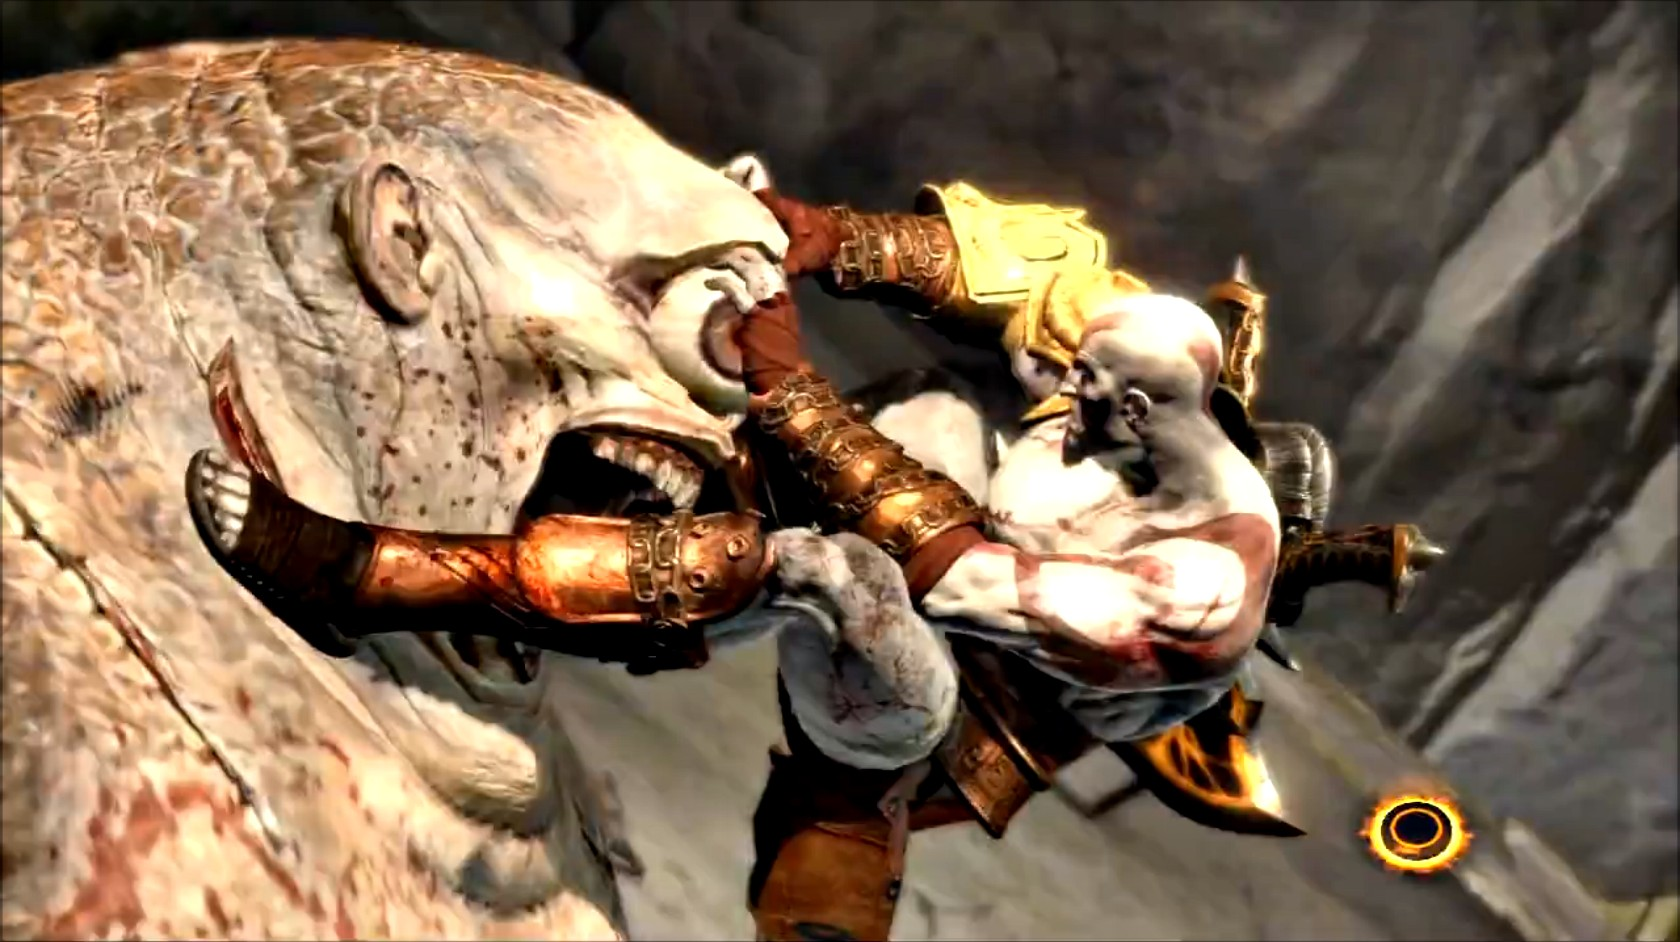 """Another """"rideable"""" creature in GOWIII , the Cyclops was another returning character where we wanted Kratos to use him as a weapon (""""Weaponizing"""" we called it). It took a few iterations to get Kratos looking strong and in control as well as the Cyclops not looking like a vehicle. The key was to sell the """"pain"""" in the Cyclops reaction when Kratos stabs him and make the reaction feel natural but also propel the player forward."""